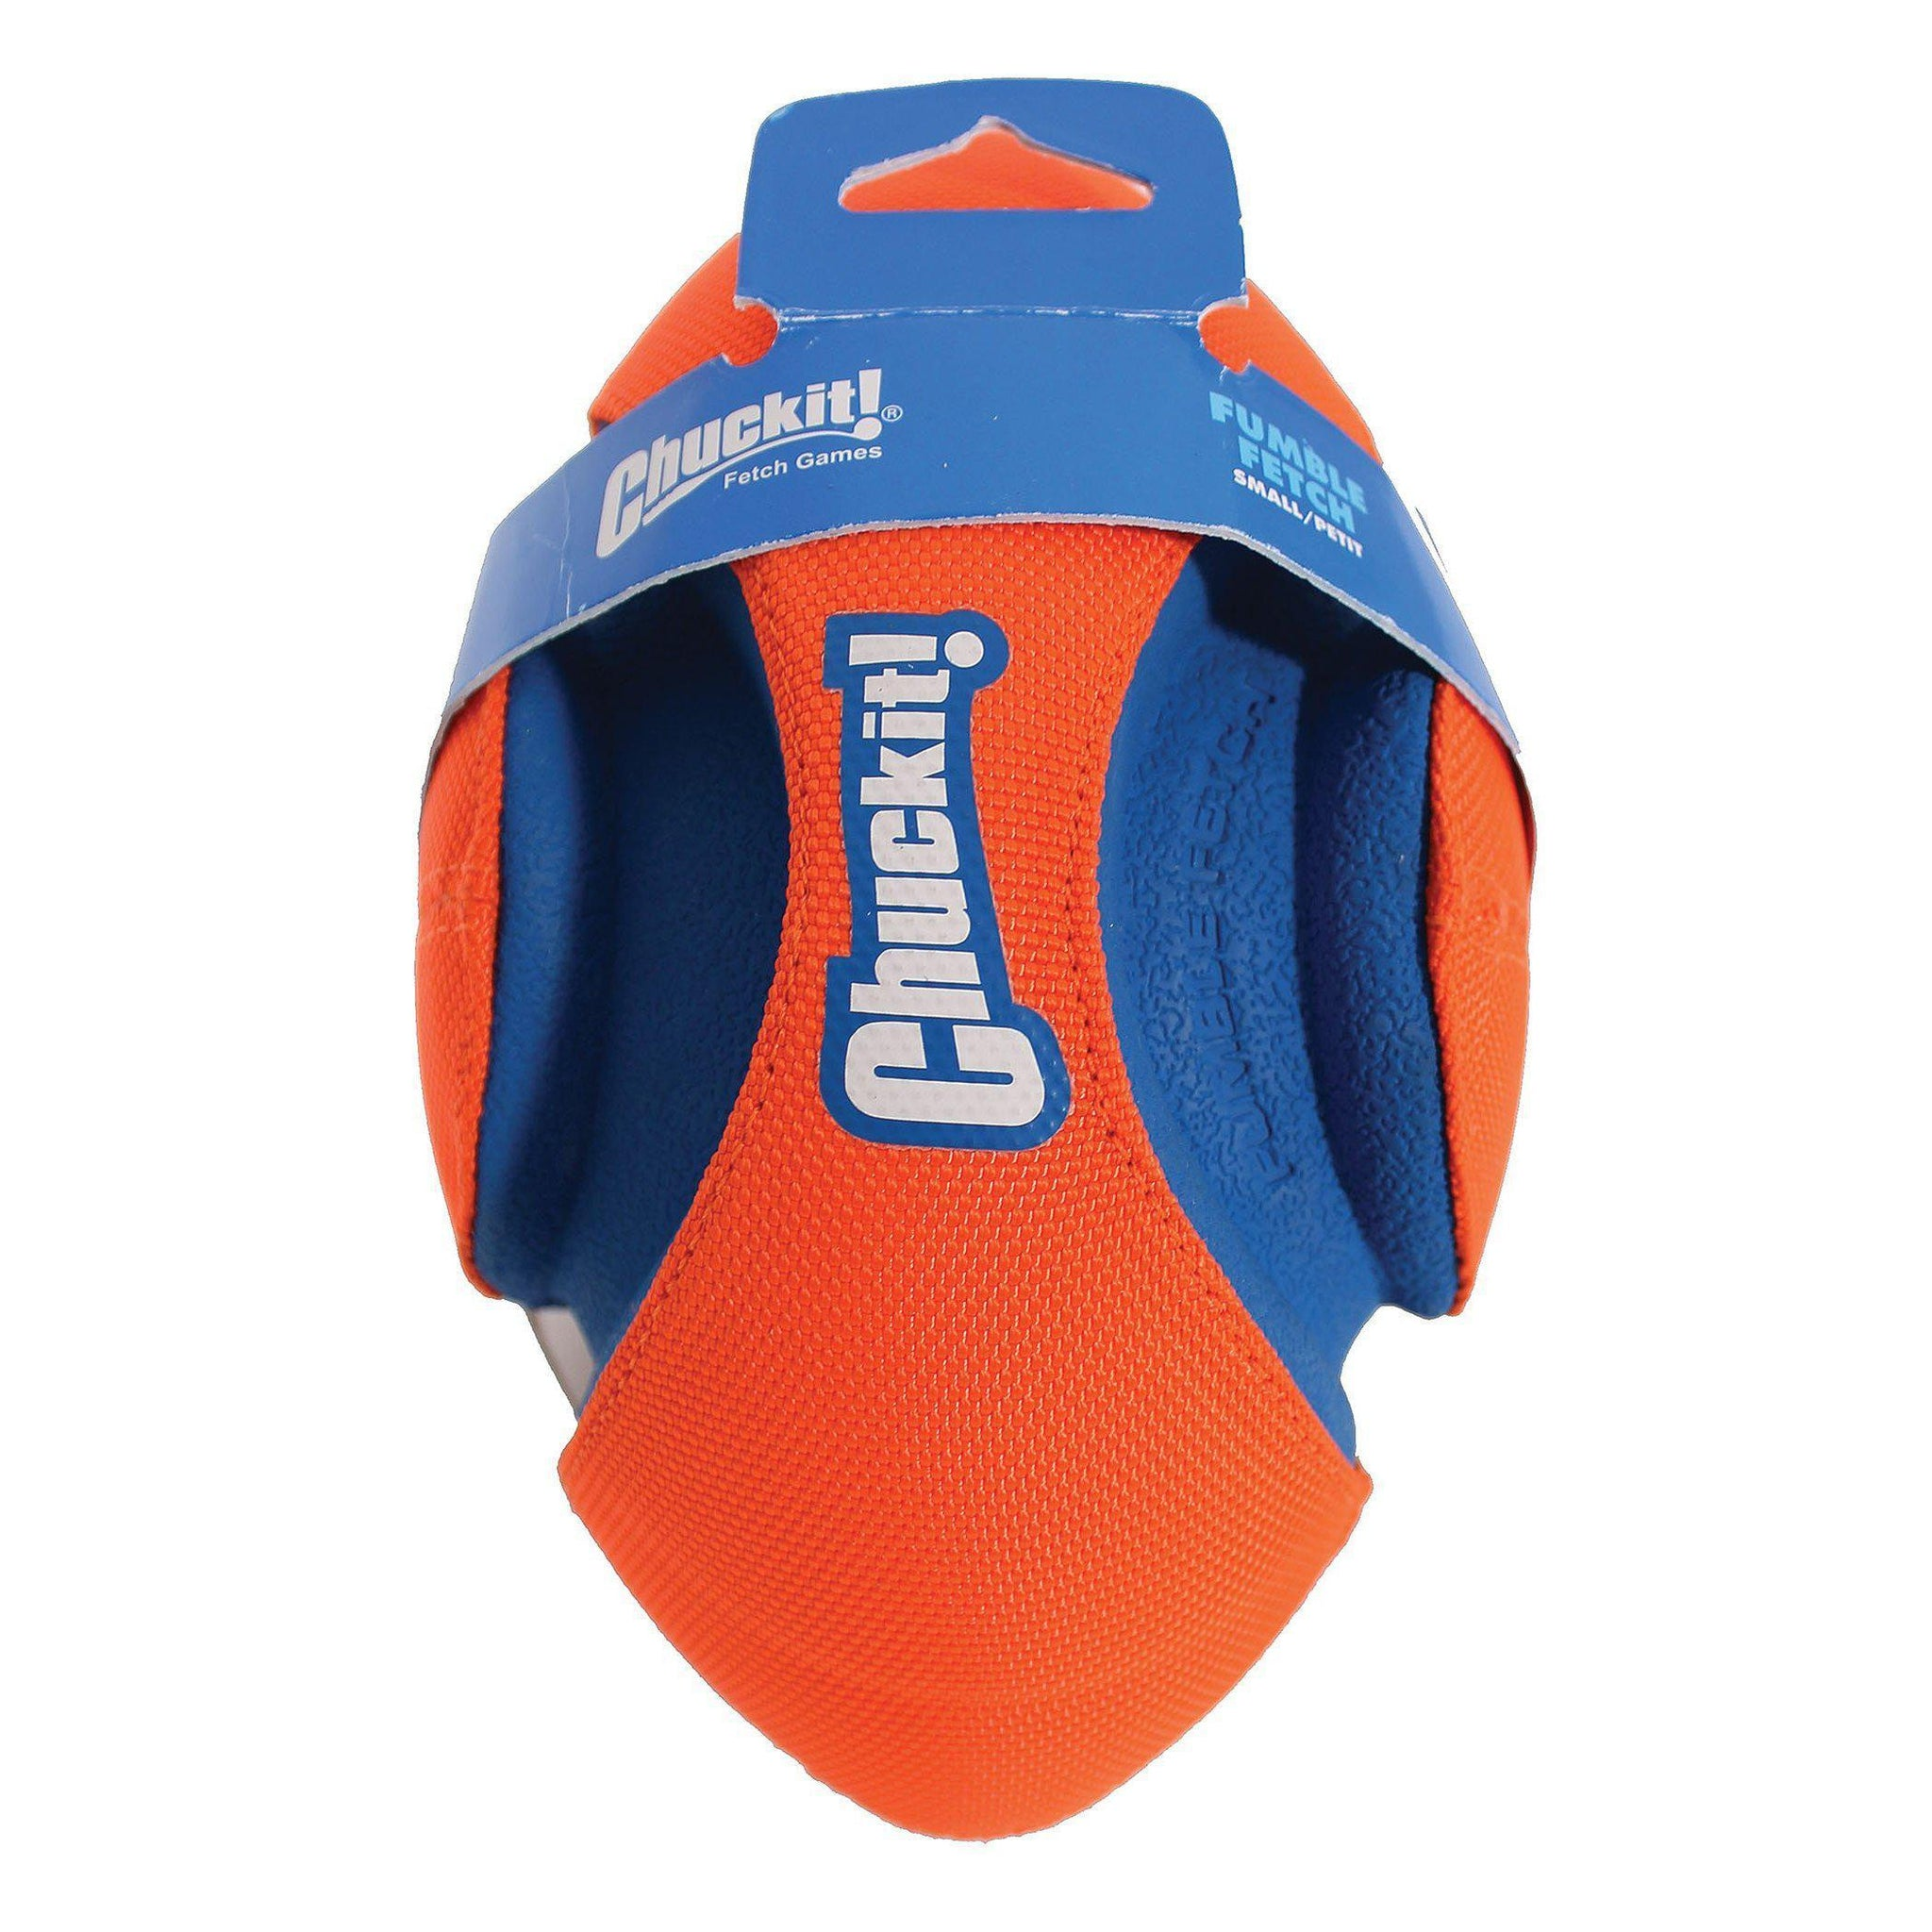 Canine Hardware Inc - Chuckit! Fumble Fetch Ball Dog Toy-Canine Hardware Inc-DirtyFurClothing